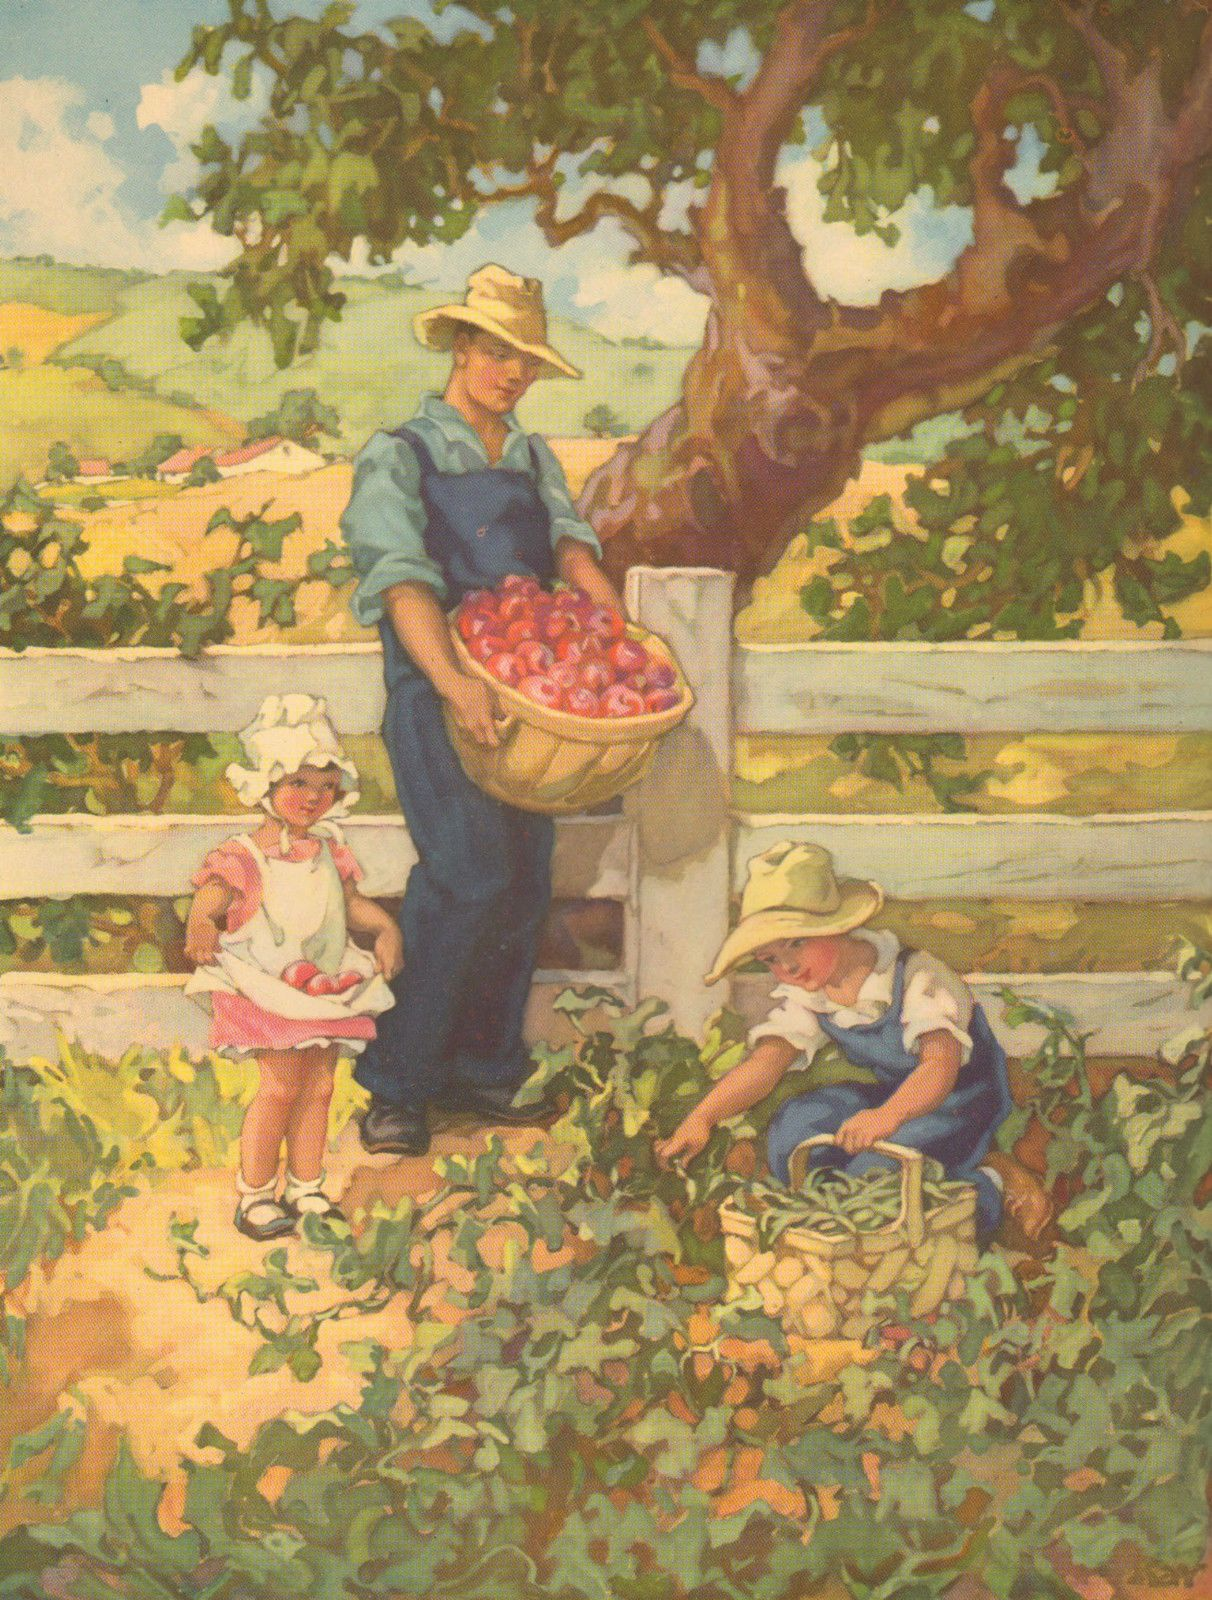 Children Farm Scene Picking Apples Vintage 1948 Antique